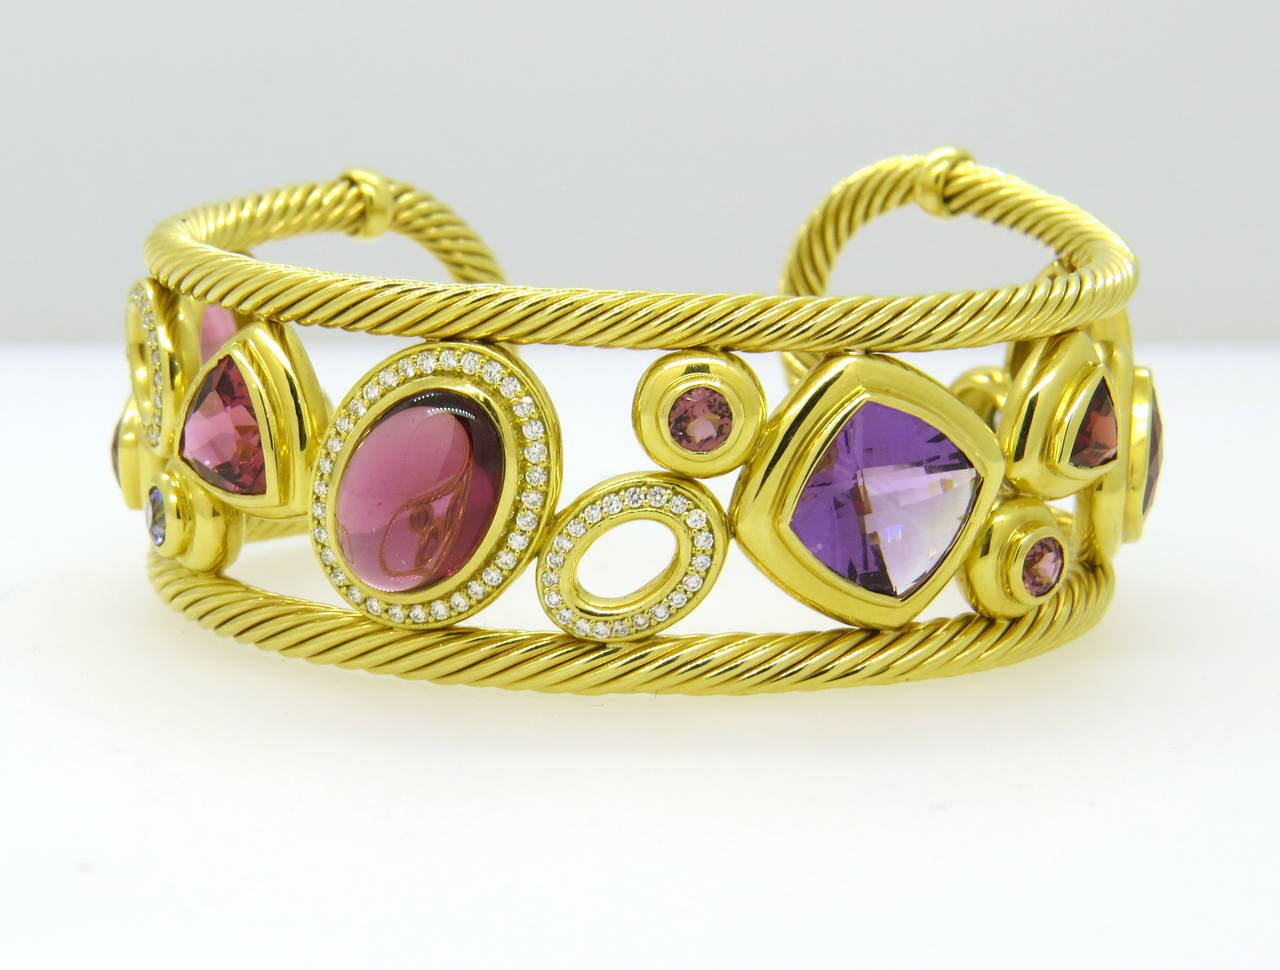 David Yurman 18k Gold Cuff Bracelet From Mosaic Collection Featuring Diamondulticolor Gemstones